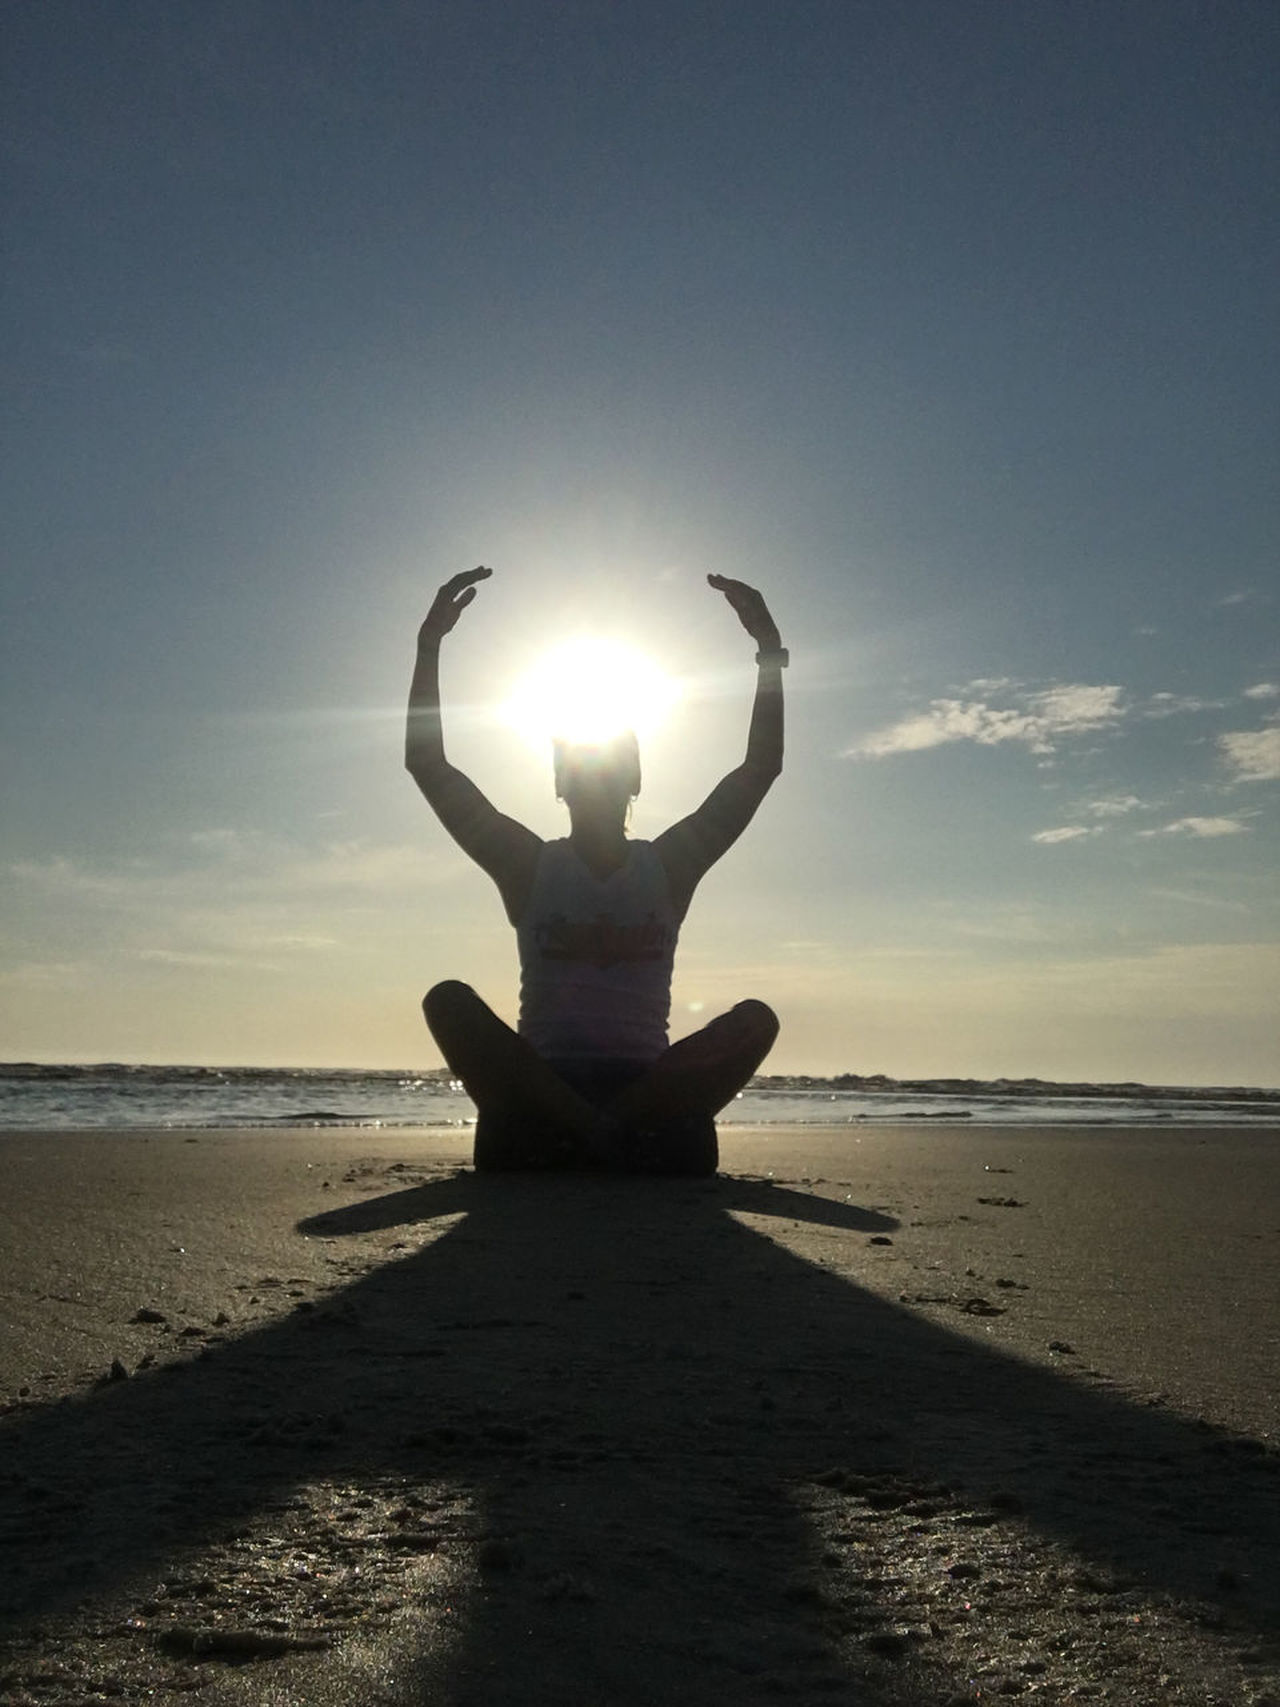 Yoga Halo Beach Beauty In Nature Day Full Length Halo Horizon Over Water Nature One Person Outdoors People Sand Scenics Sea Shore Silhouette Sky Sun Sunlight Sunset Tranquil Scene Tranquility Water Yoga